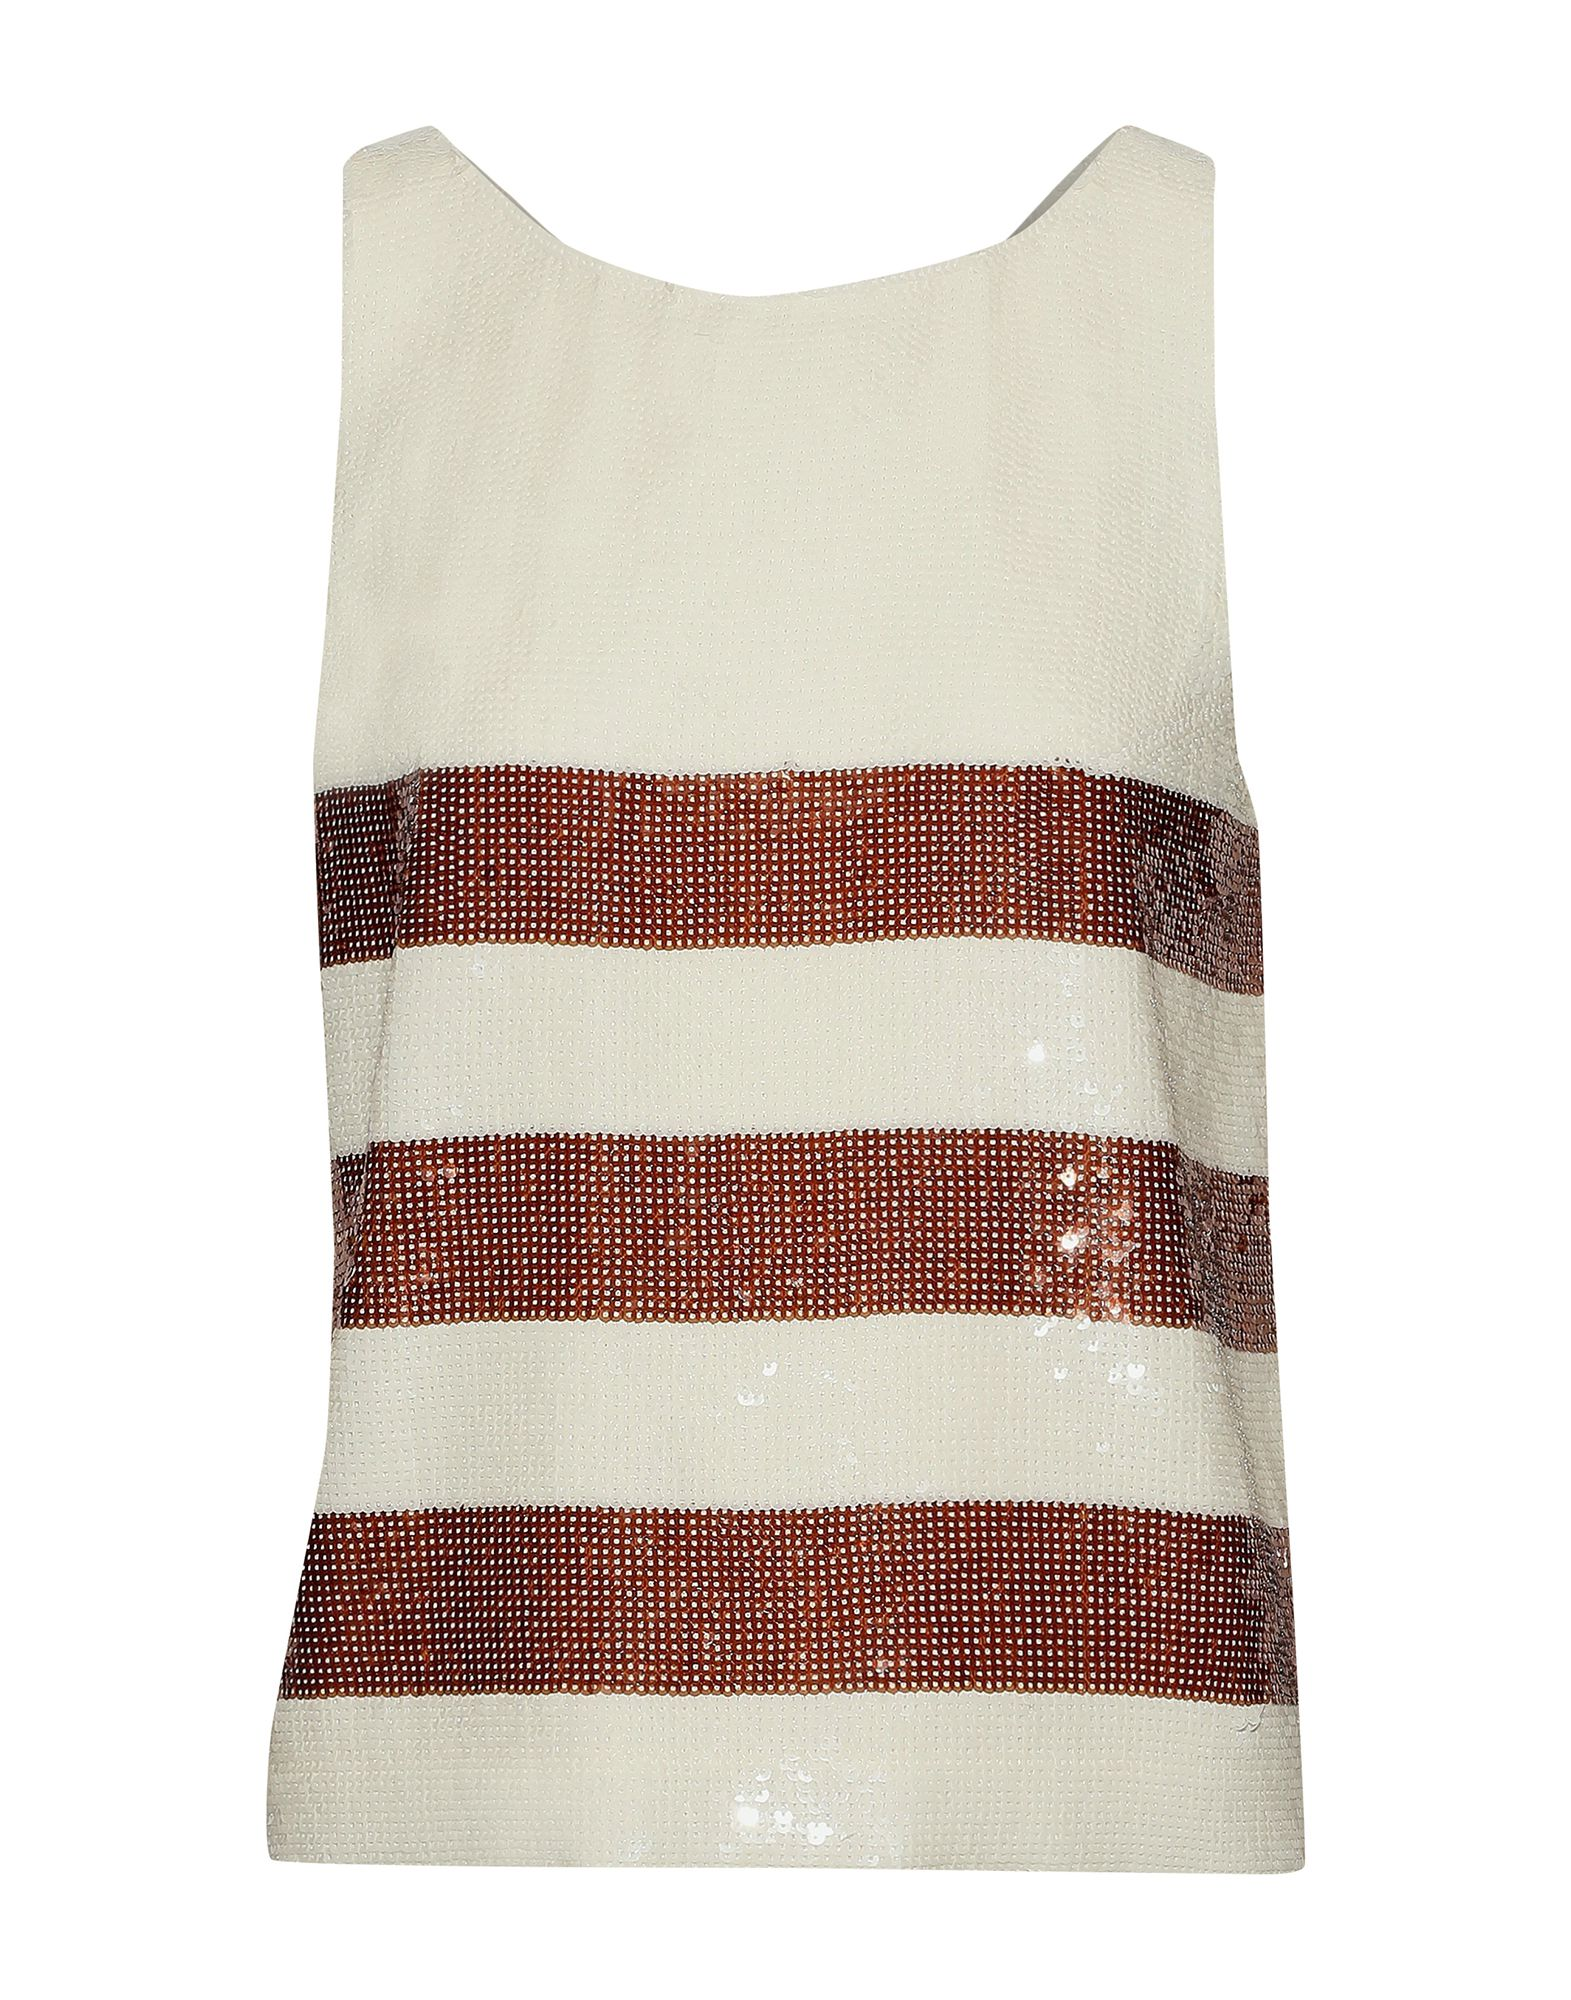 VERONICA BEARD Tops. crepe, sequins, stripes, round collar, sleeveless, no pockets, fully lined. 100% Polyester